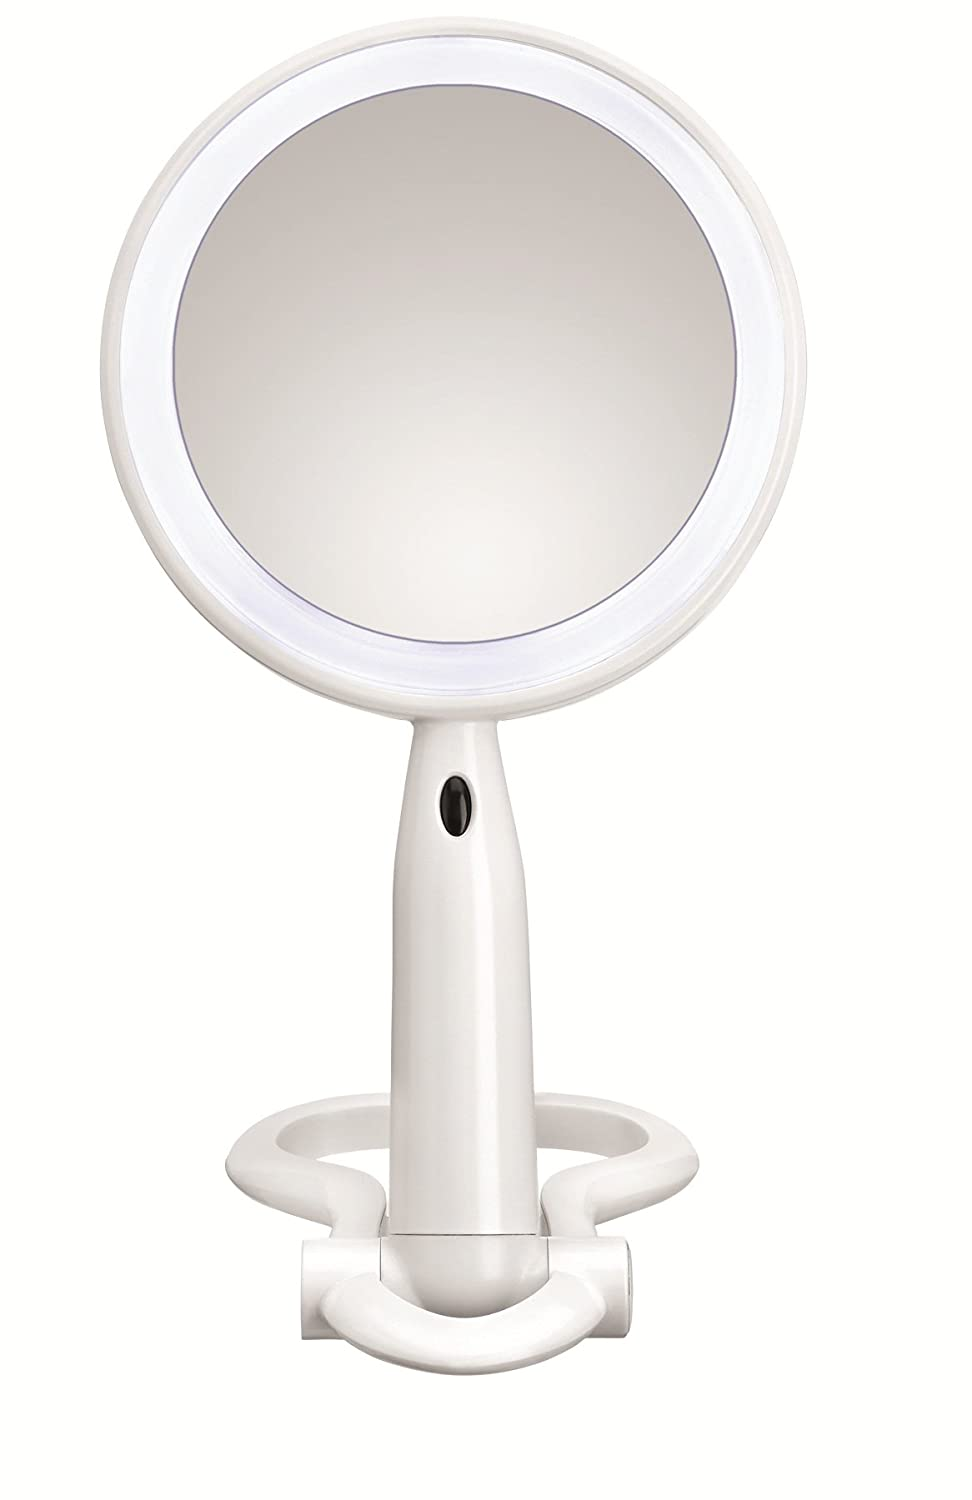 Conair Plastic Double-Sided Lighted Makeup Mirror - Lighted Vanity Makeup Mirror with LED Lights; 1x/3x magnification; White; compact - great for travel